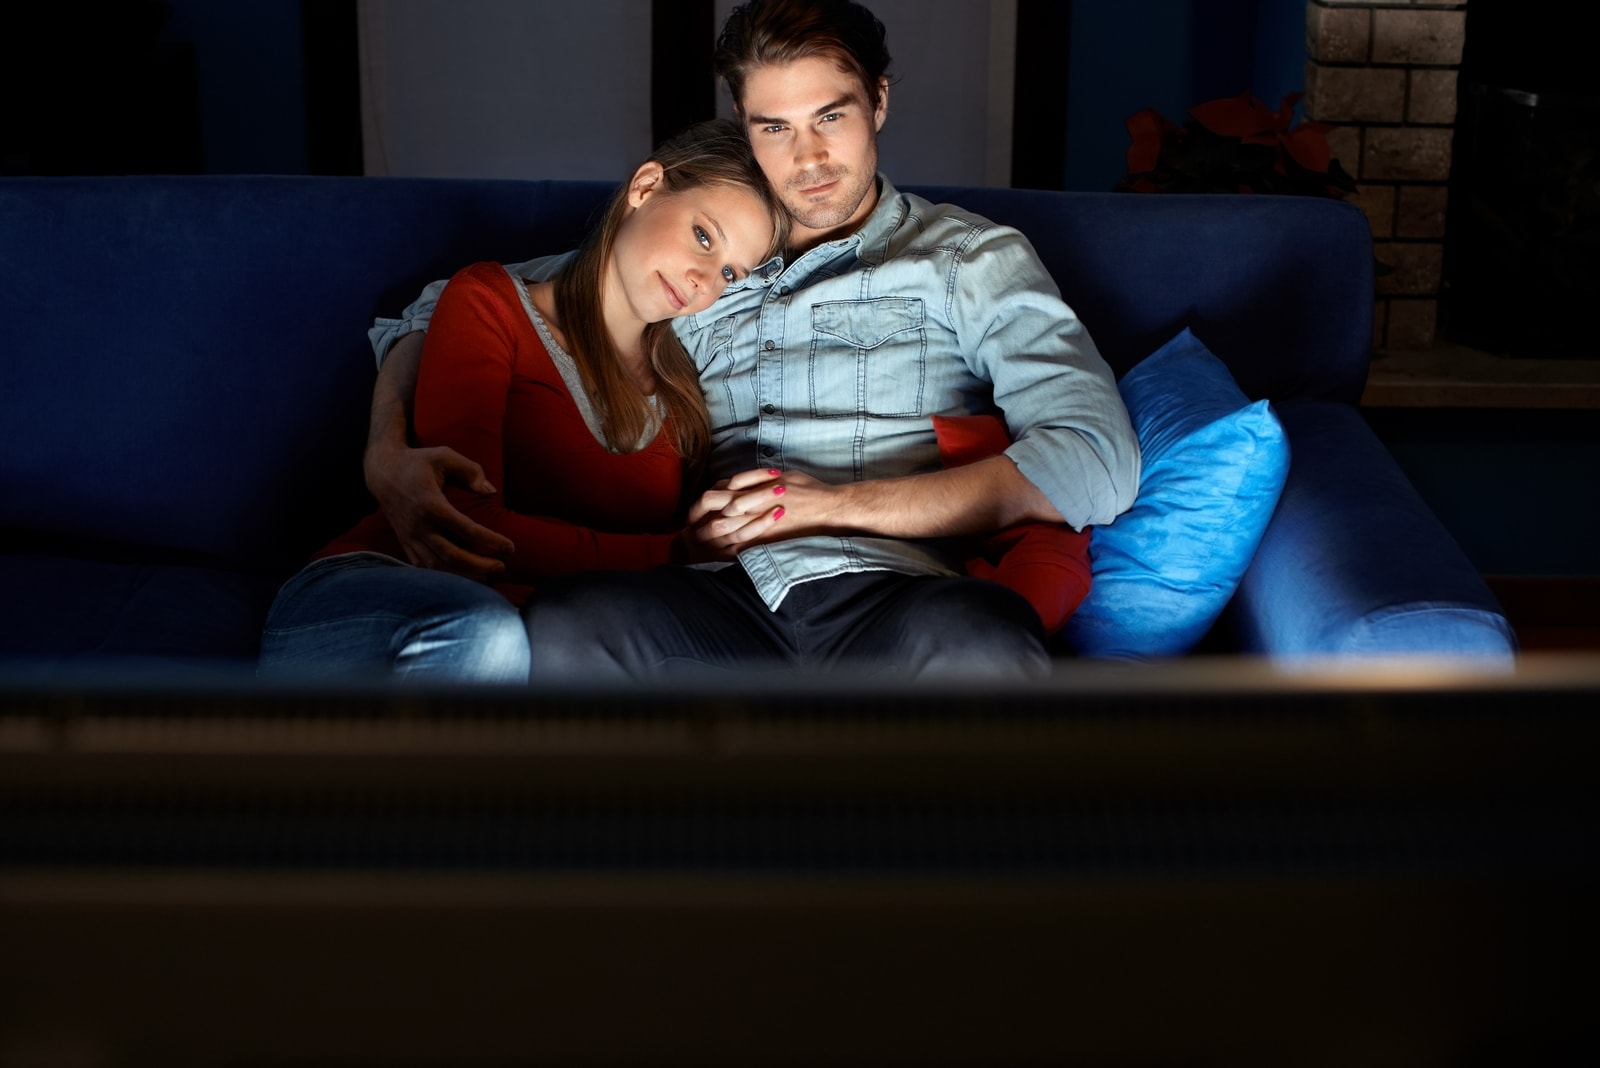 man and woman watching movie while sitting on sofa